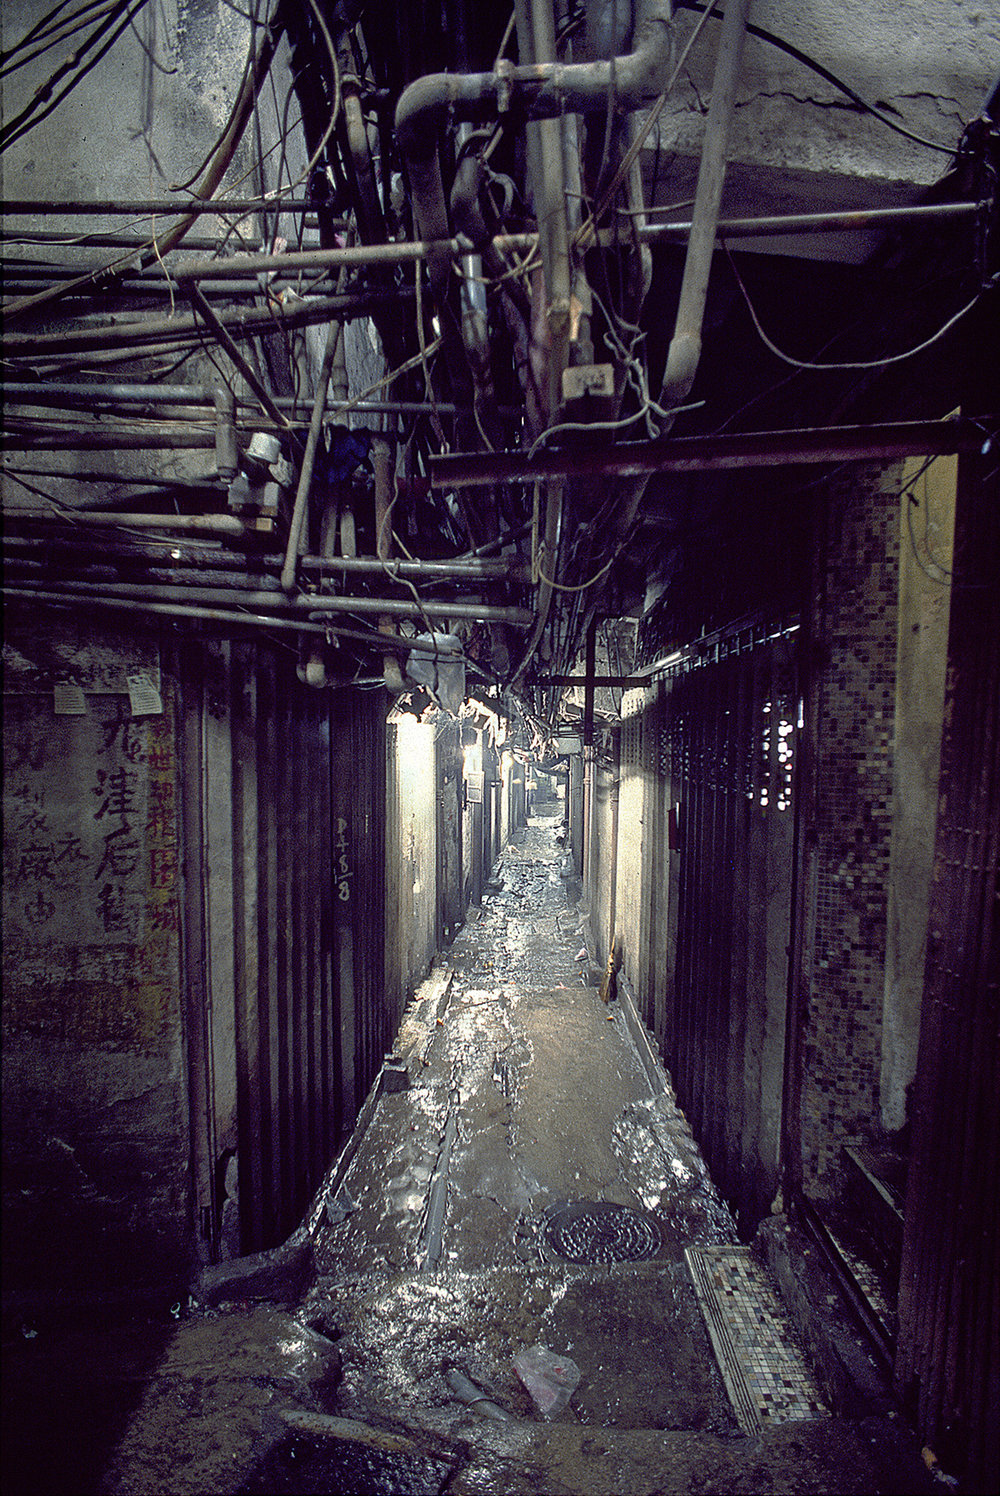 Kowloon Walled City, Alley View #2, 1989